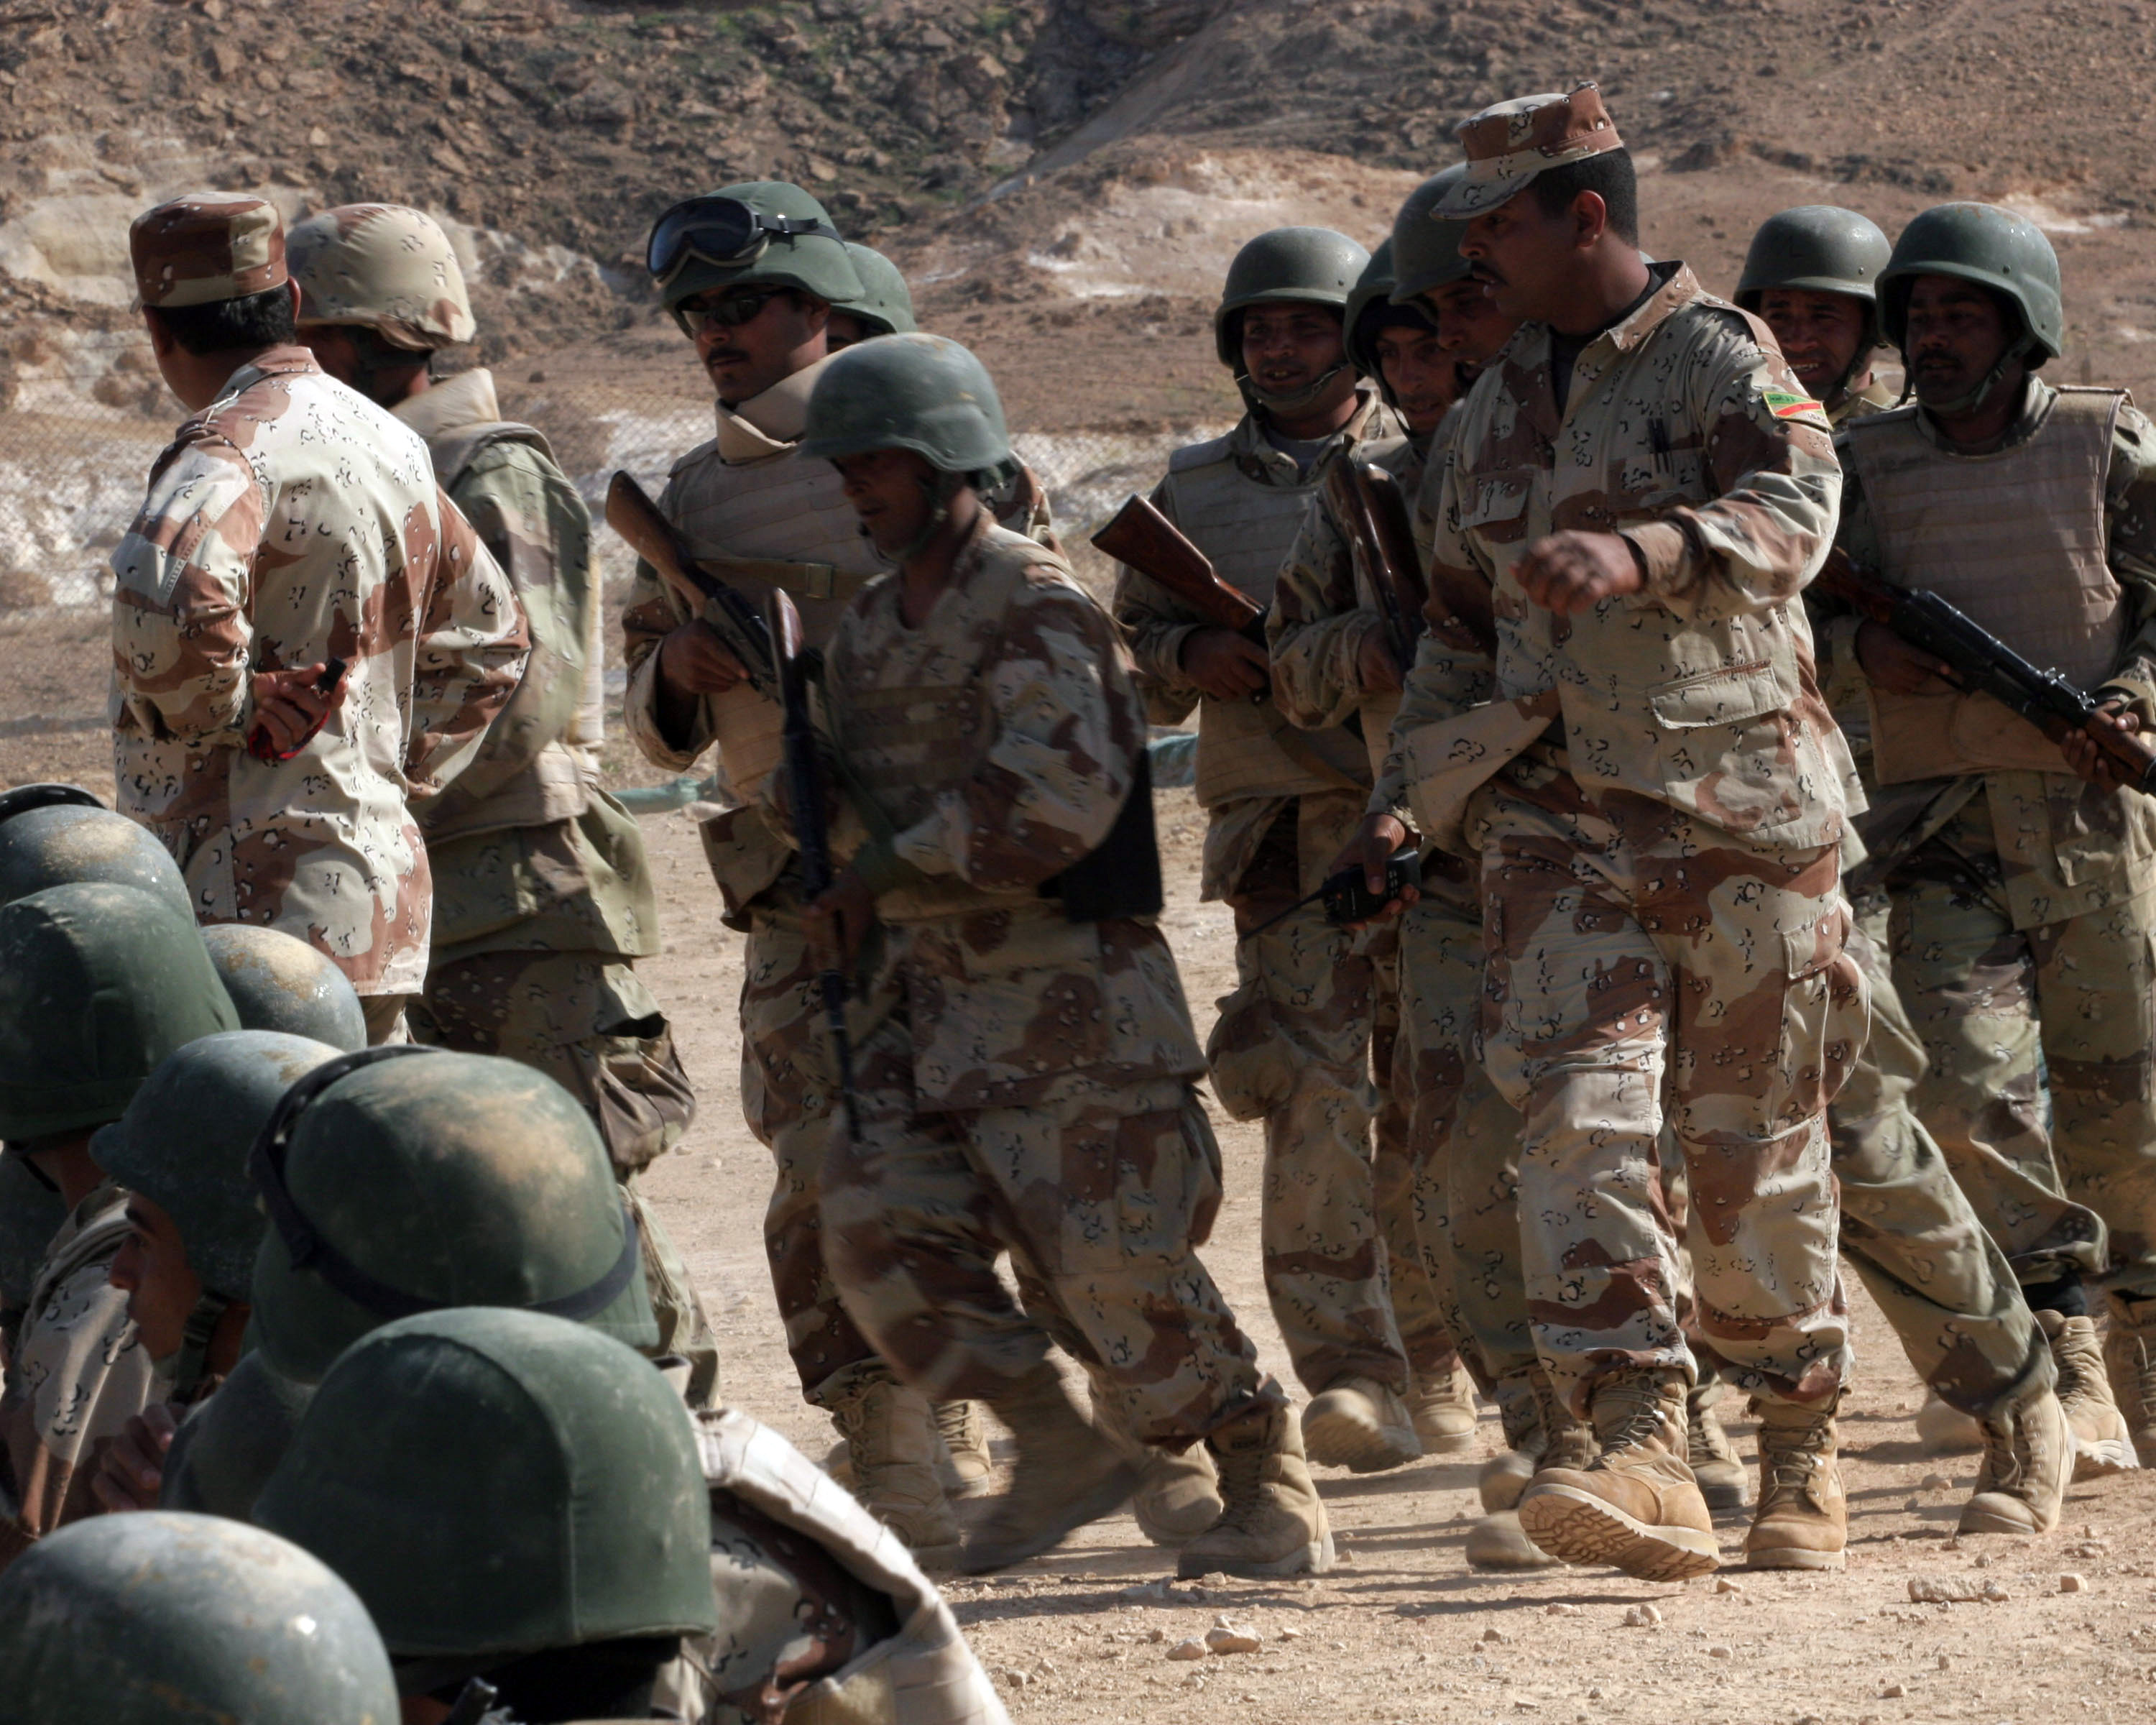 An instructor with the 2nd Briade 7th Iraqi Army Division Military Transition Team (MiTT 2-7) marches Iraqi Army Soldiers in the School of Infantry (SOI) back after an exercise on proper squad patrollin formations on Camp Yasser, Asad Air Base, Iraq on March 20, 2007. SOI is a ten day trainin school that teaches advanced fihtin techniques and tactics to new Iraqi Army Soldiers before they report to their battalions. 2nd Battalion 7th Iraqi Army Division Military Transition Team is deployed as a part of MNF-W in support of Operation Iraqi Freedom in the Anbar province of Iraq to develop the Iraqi Security Forces, facilitate the development of official rule of law throuh democratic...